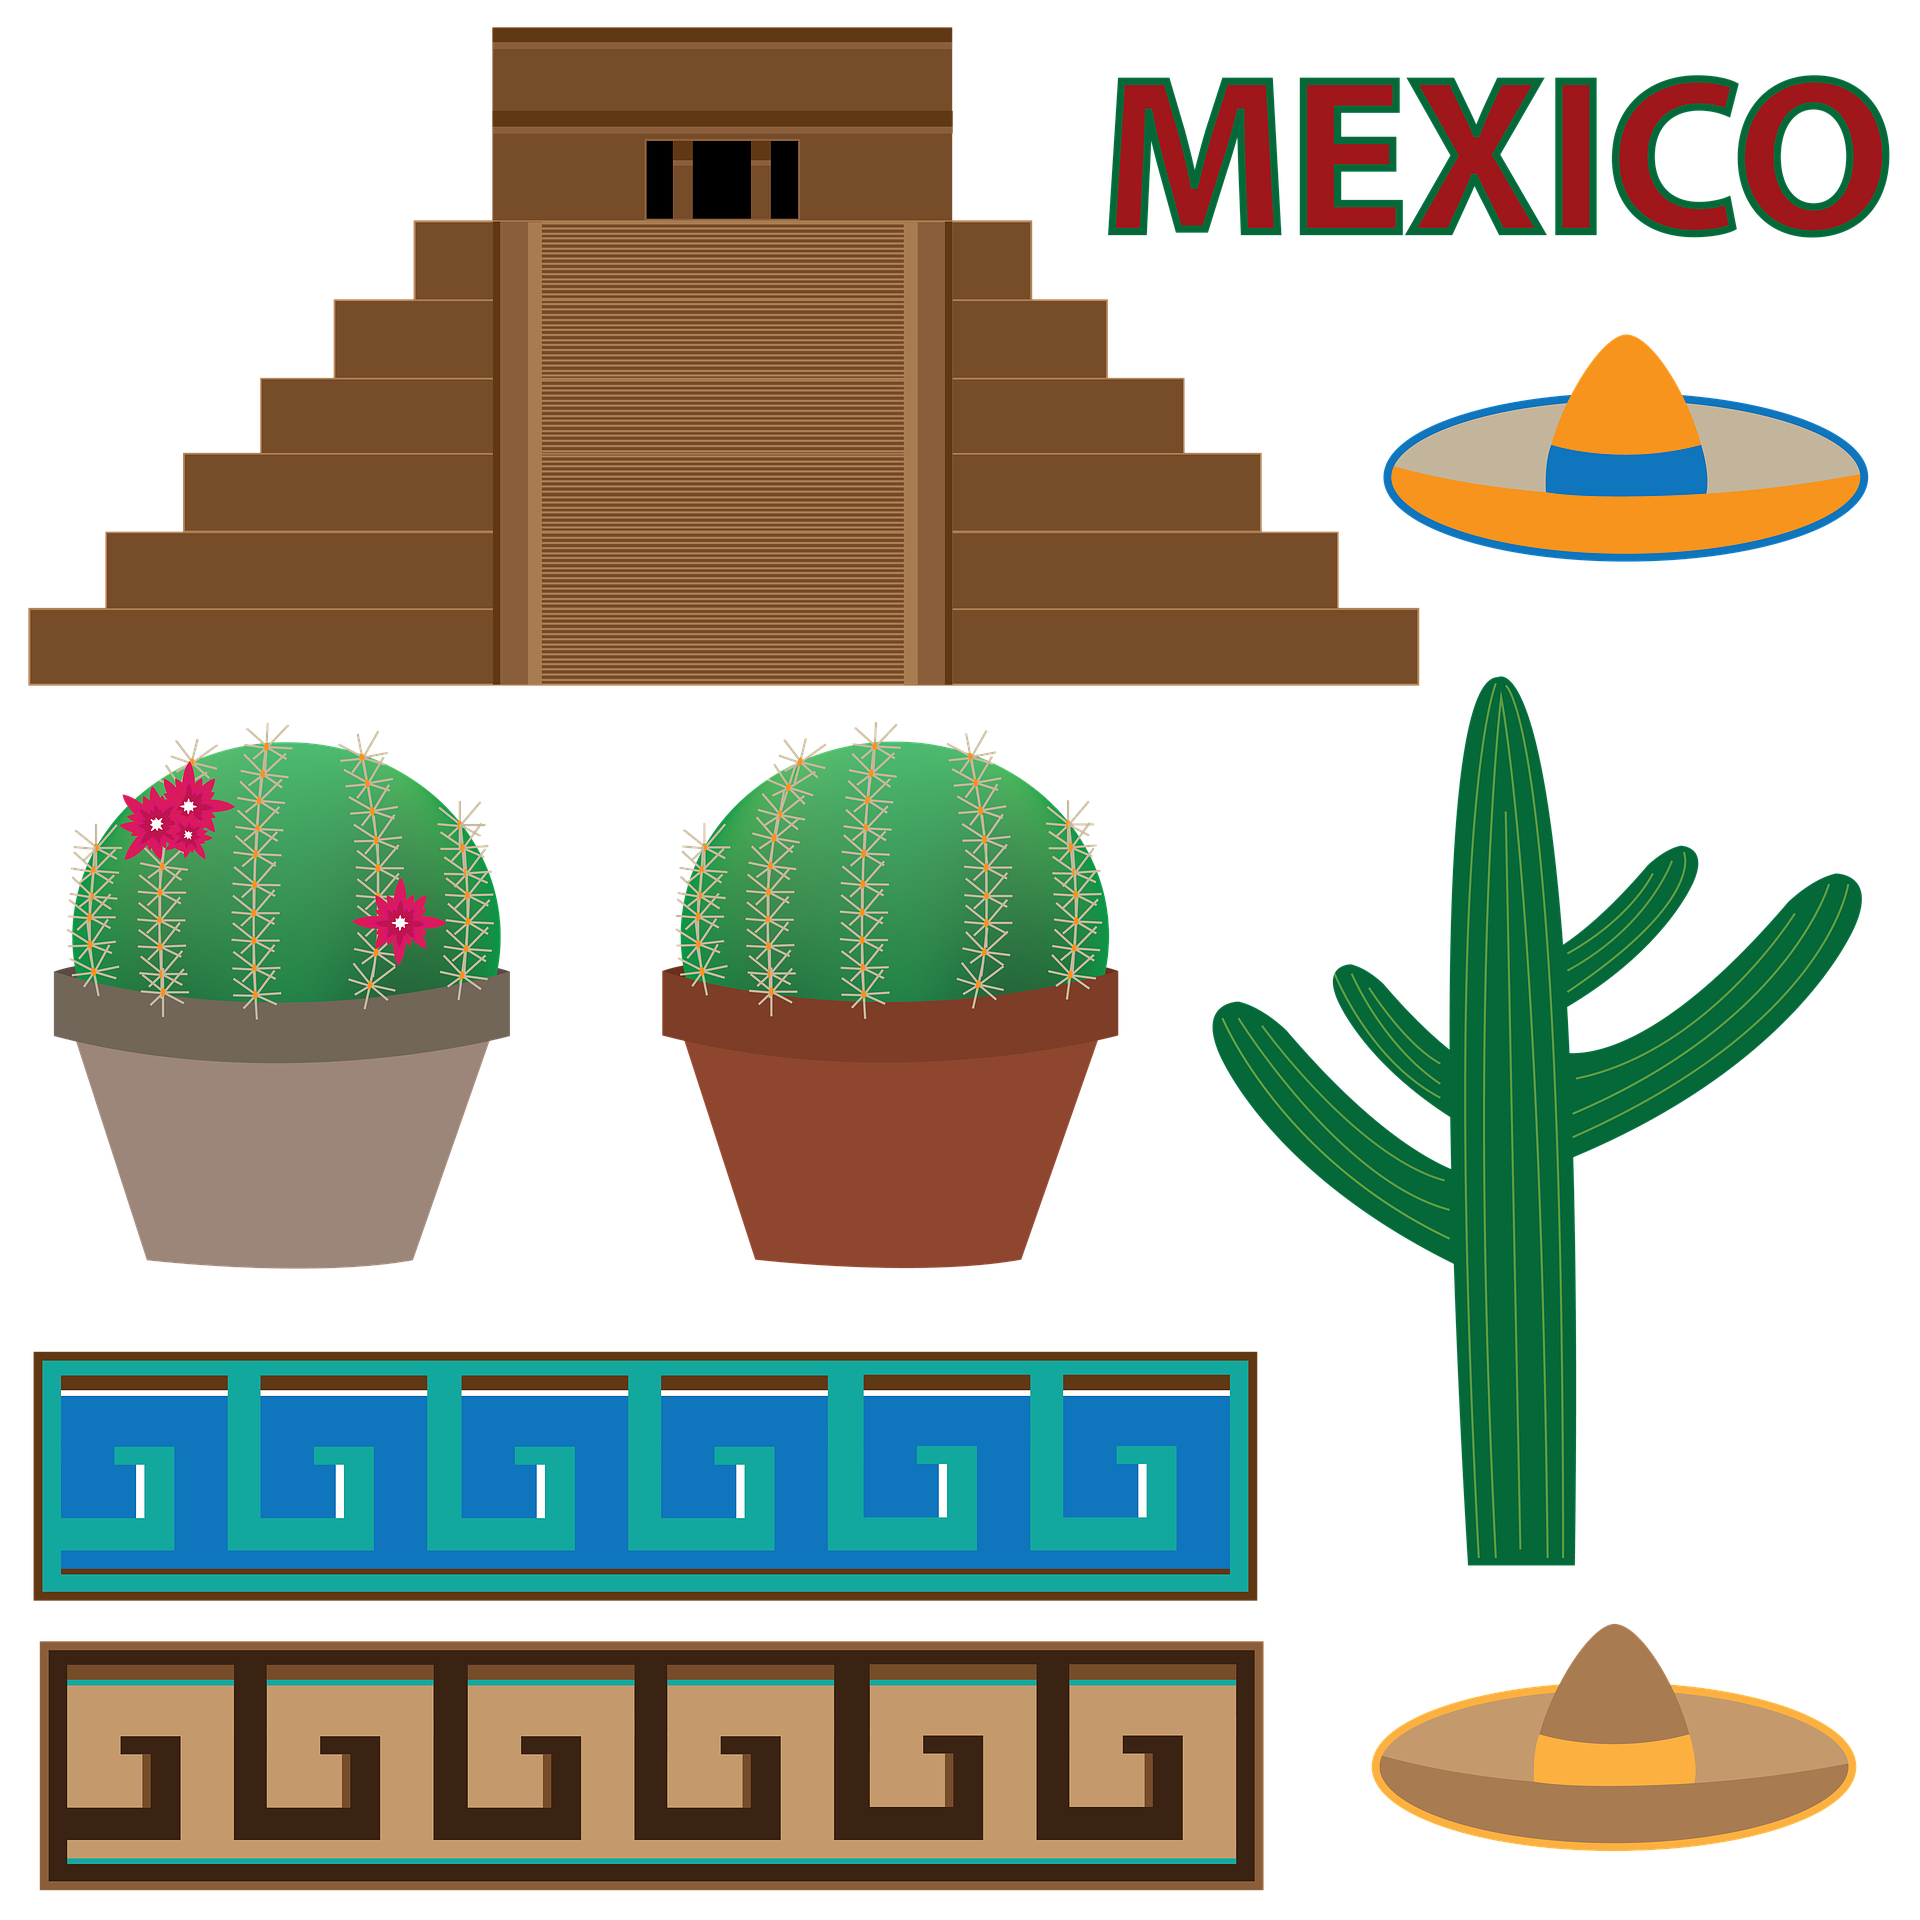 April 2018 - Latin America is a massive market which we haven't tackled yet. But we think Mexico is a good starting point. Mexico has a population of 120 million and a track record of strong growth in its economy. Our newly appointed distributor has been established for over 10 years, is based in Mexico City and handles other UK brands. We're looking forward to celebrating our first shipment with a Tequila on ice!